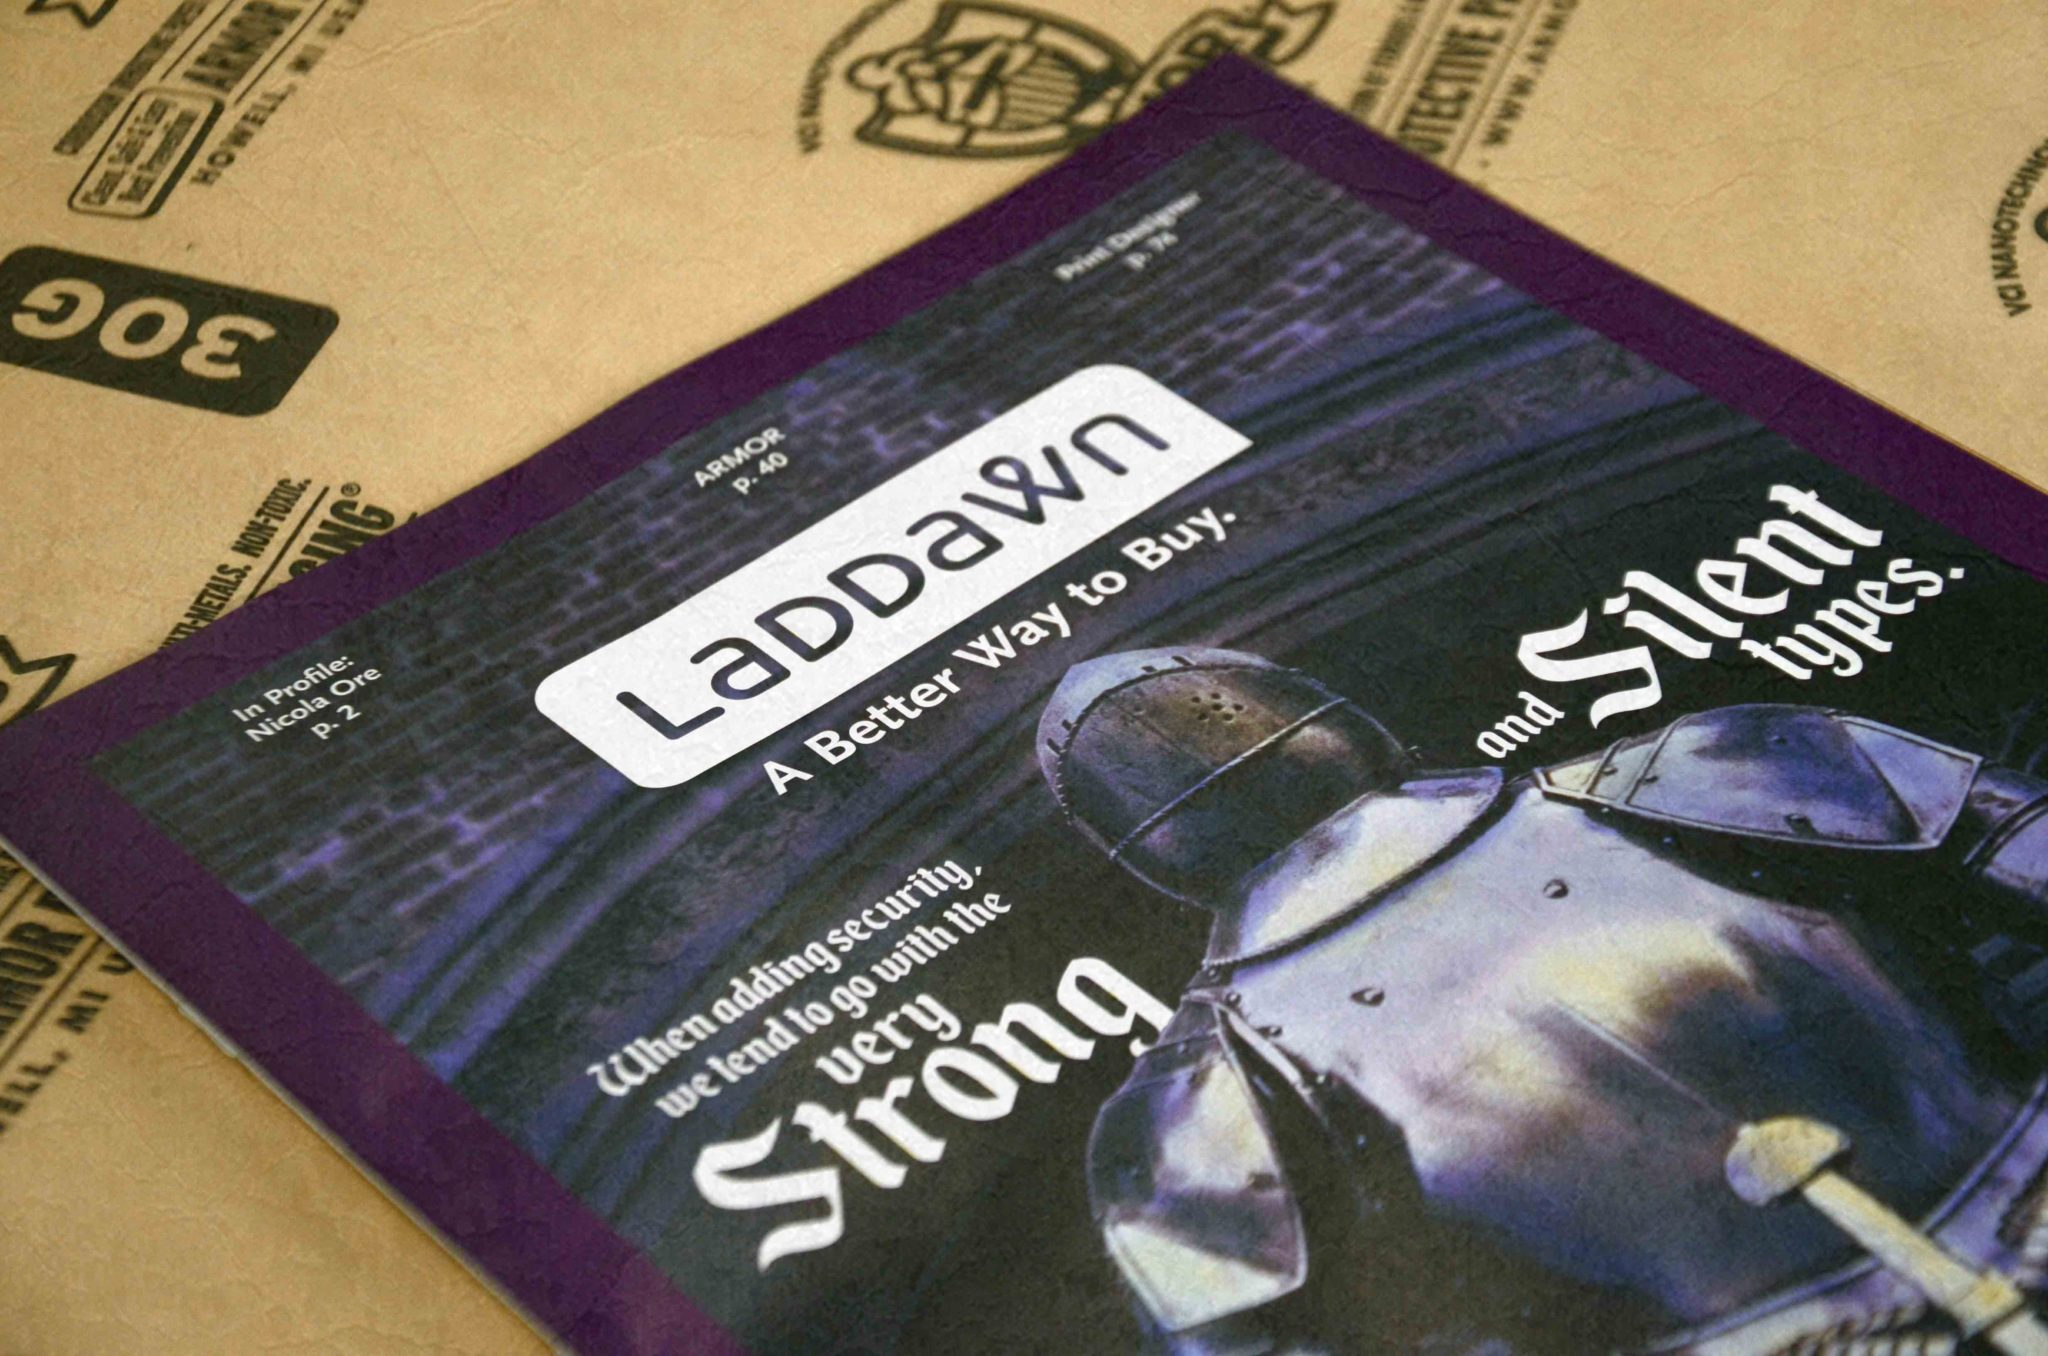 Laddawn Brochure on Armor VCI Paper